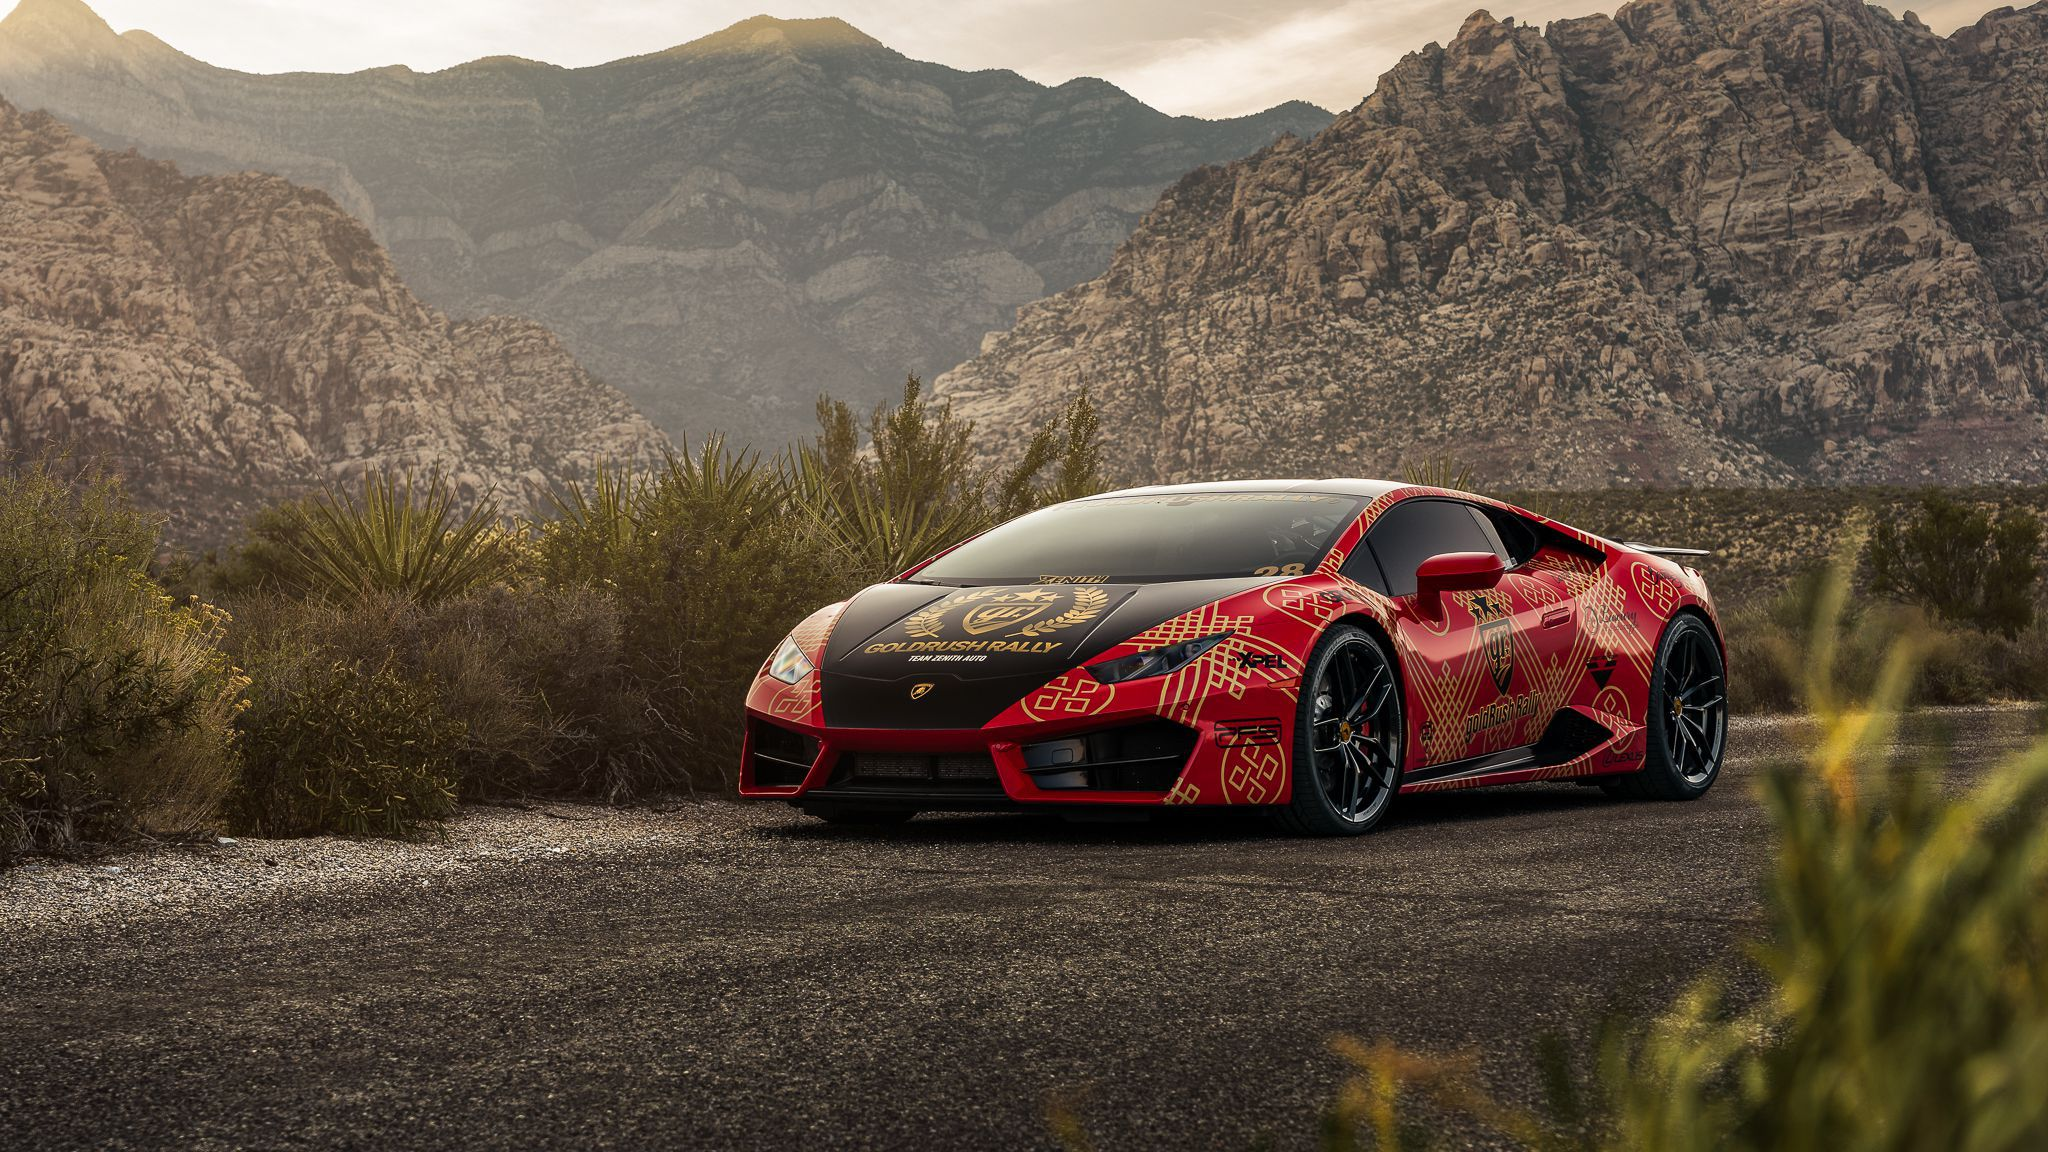 Goldrush Rally - 2018 red Lamborghini Huracan LP 610-4 exterior